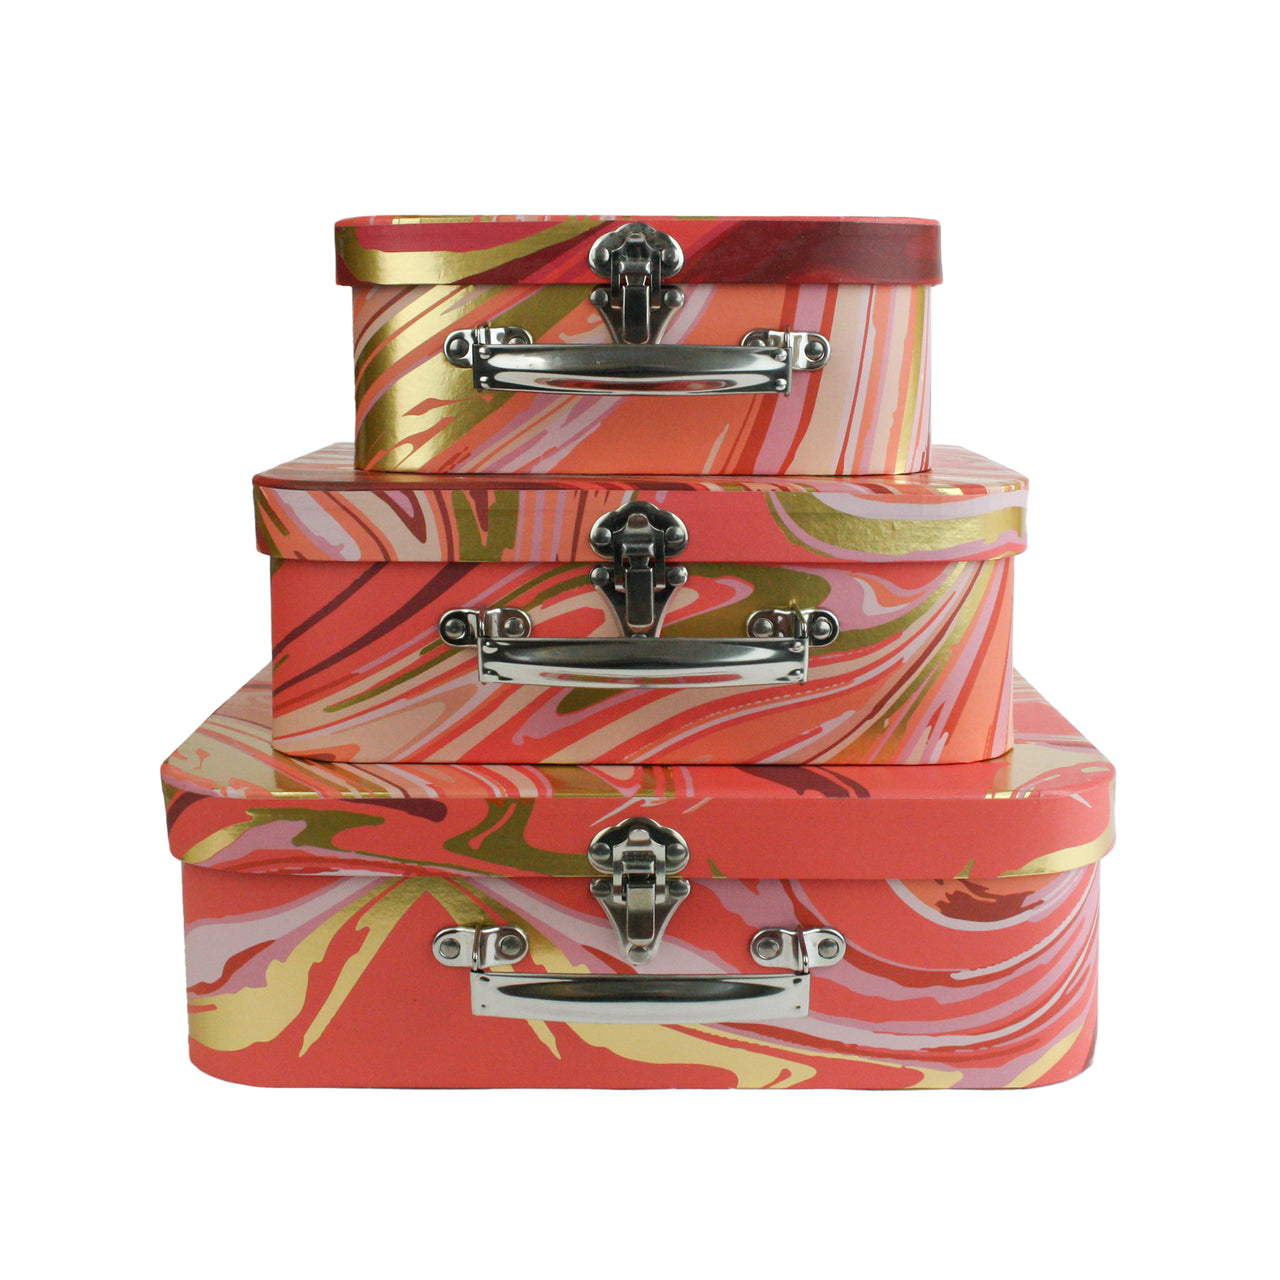 Set of 3 Suitcase Gift Box - Orange Gold Marble Print